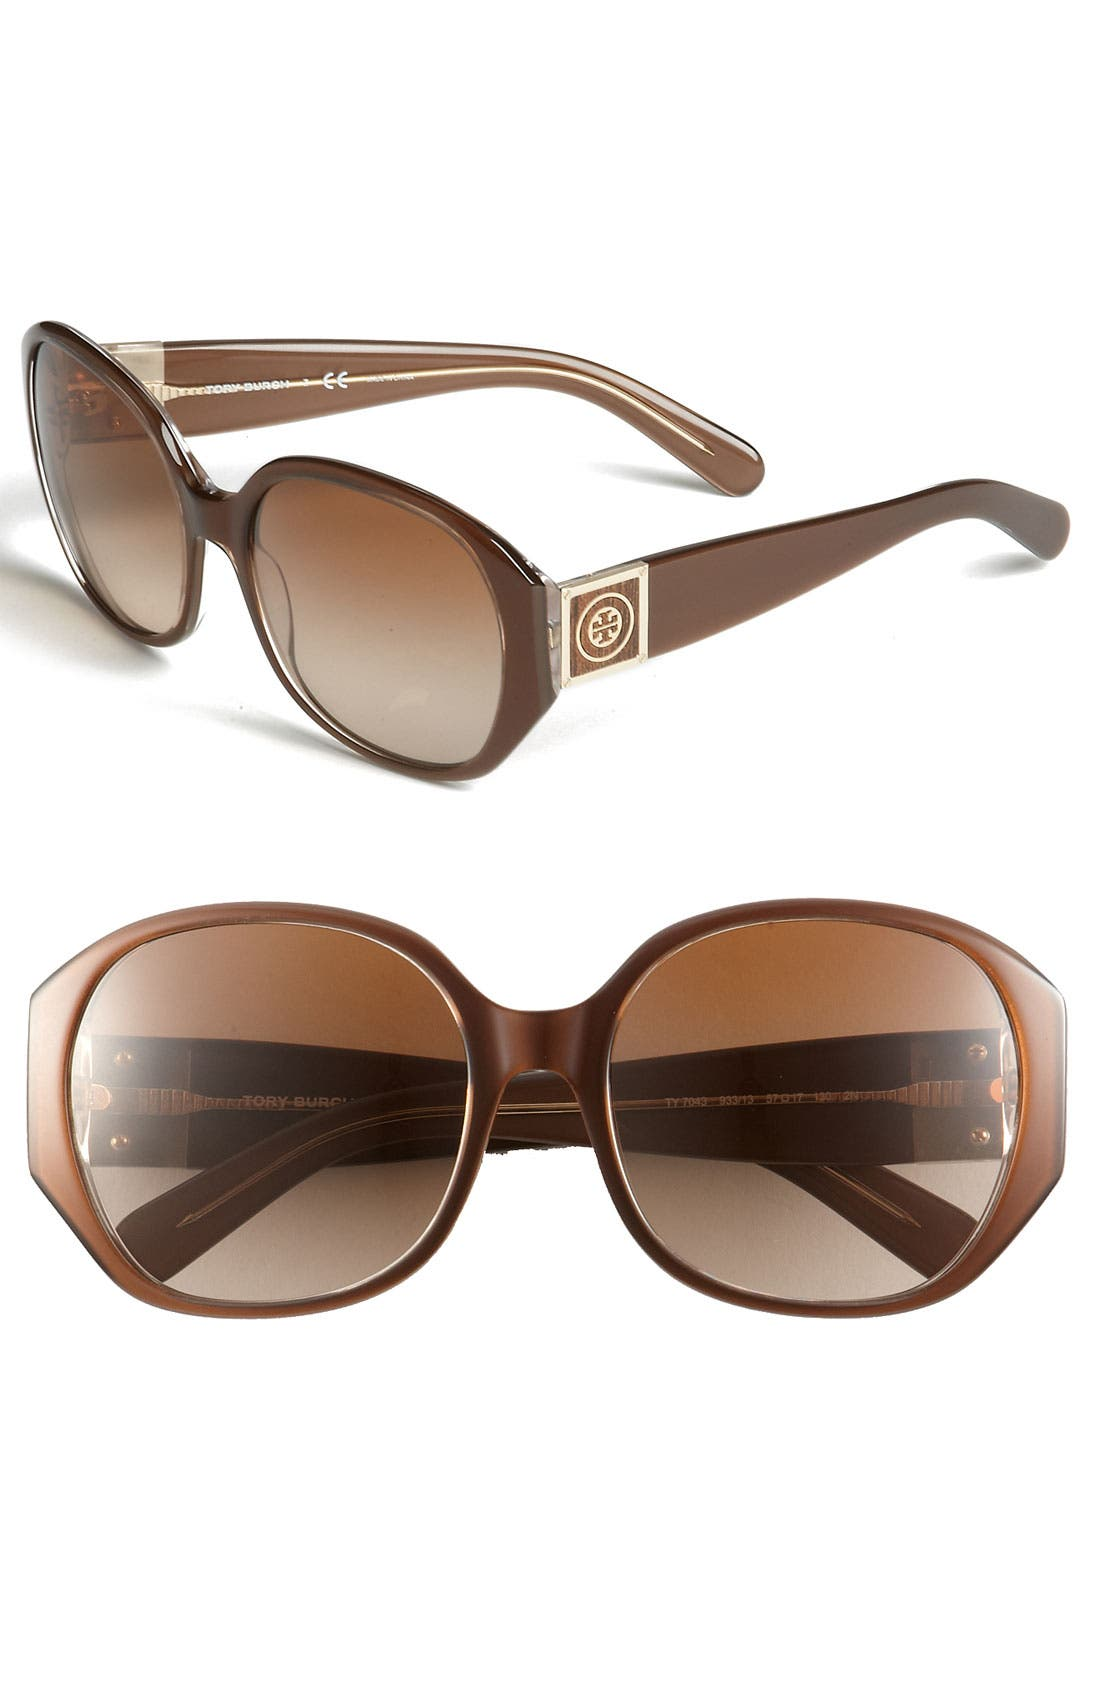 Main Image - Tory Burch 57mm Square Sunglasses